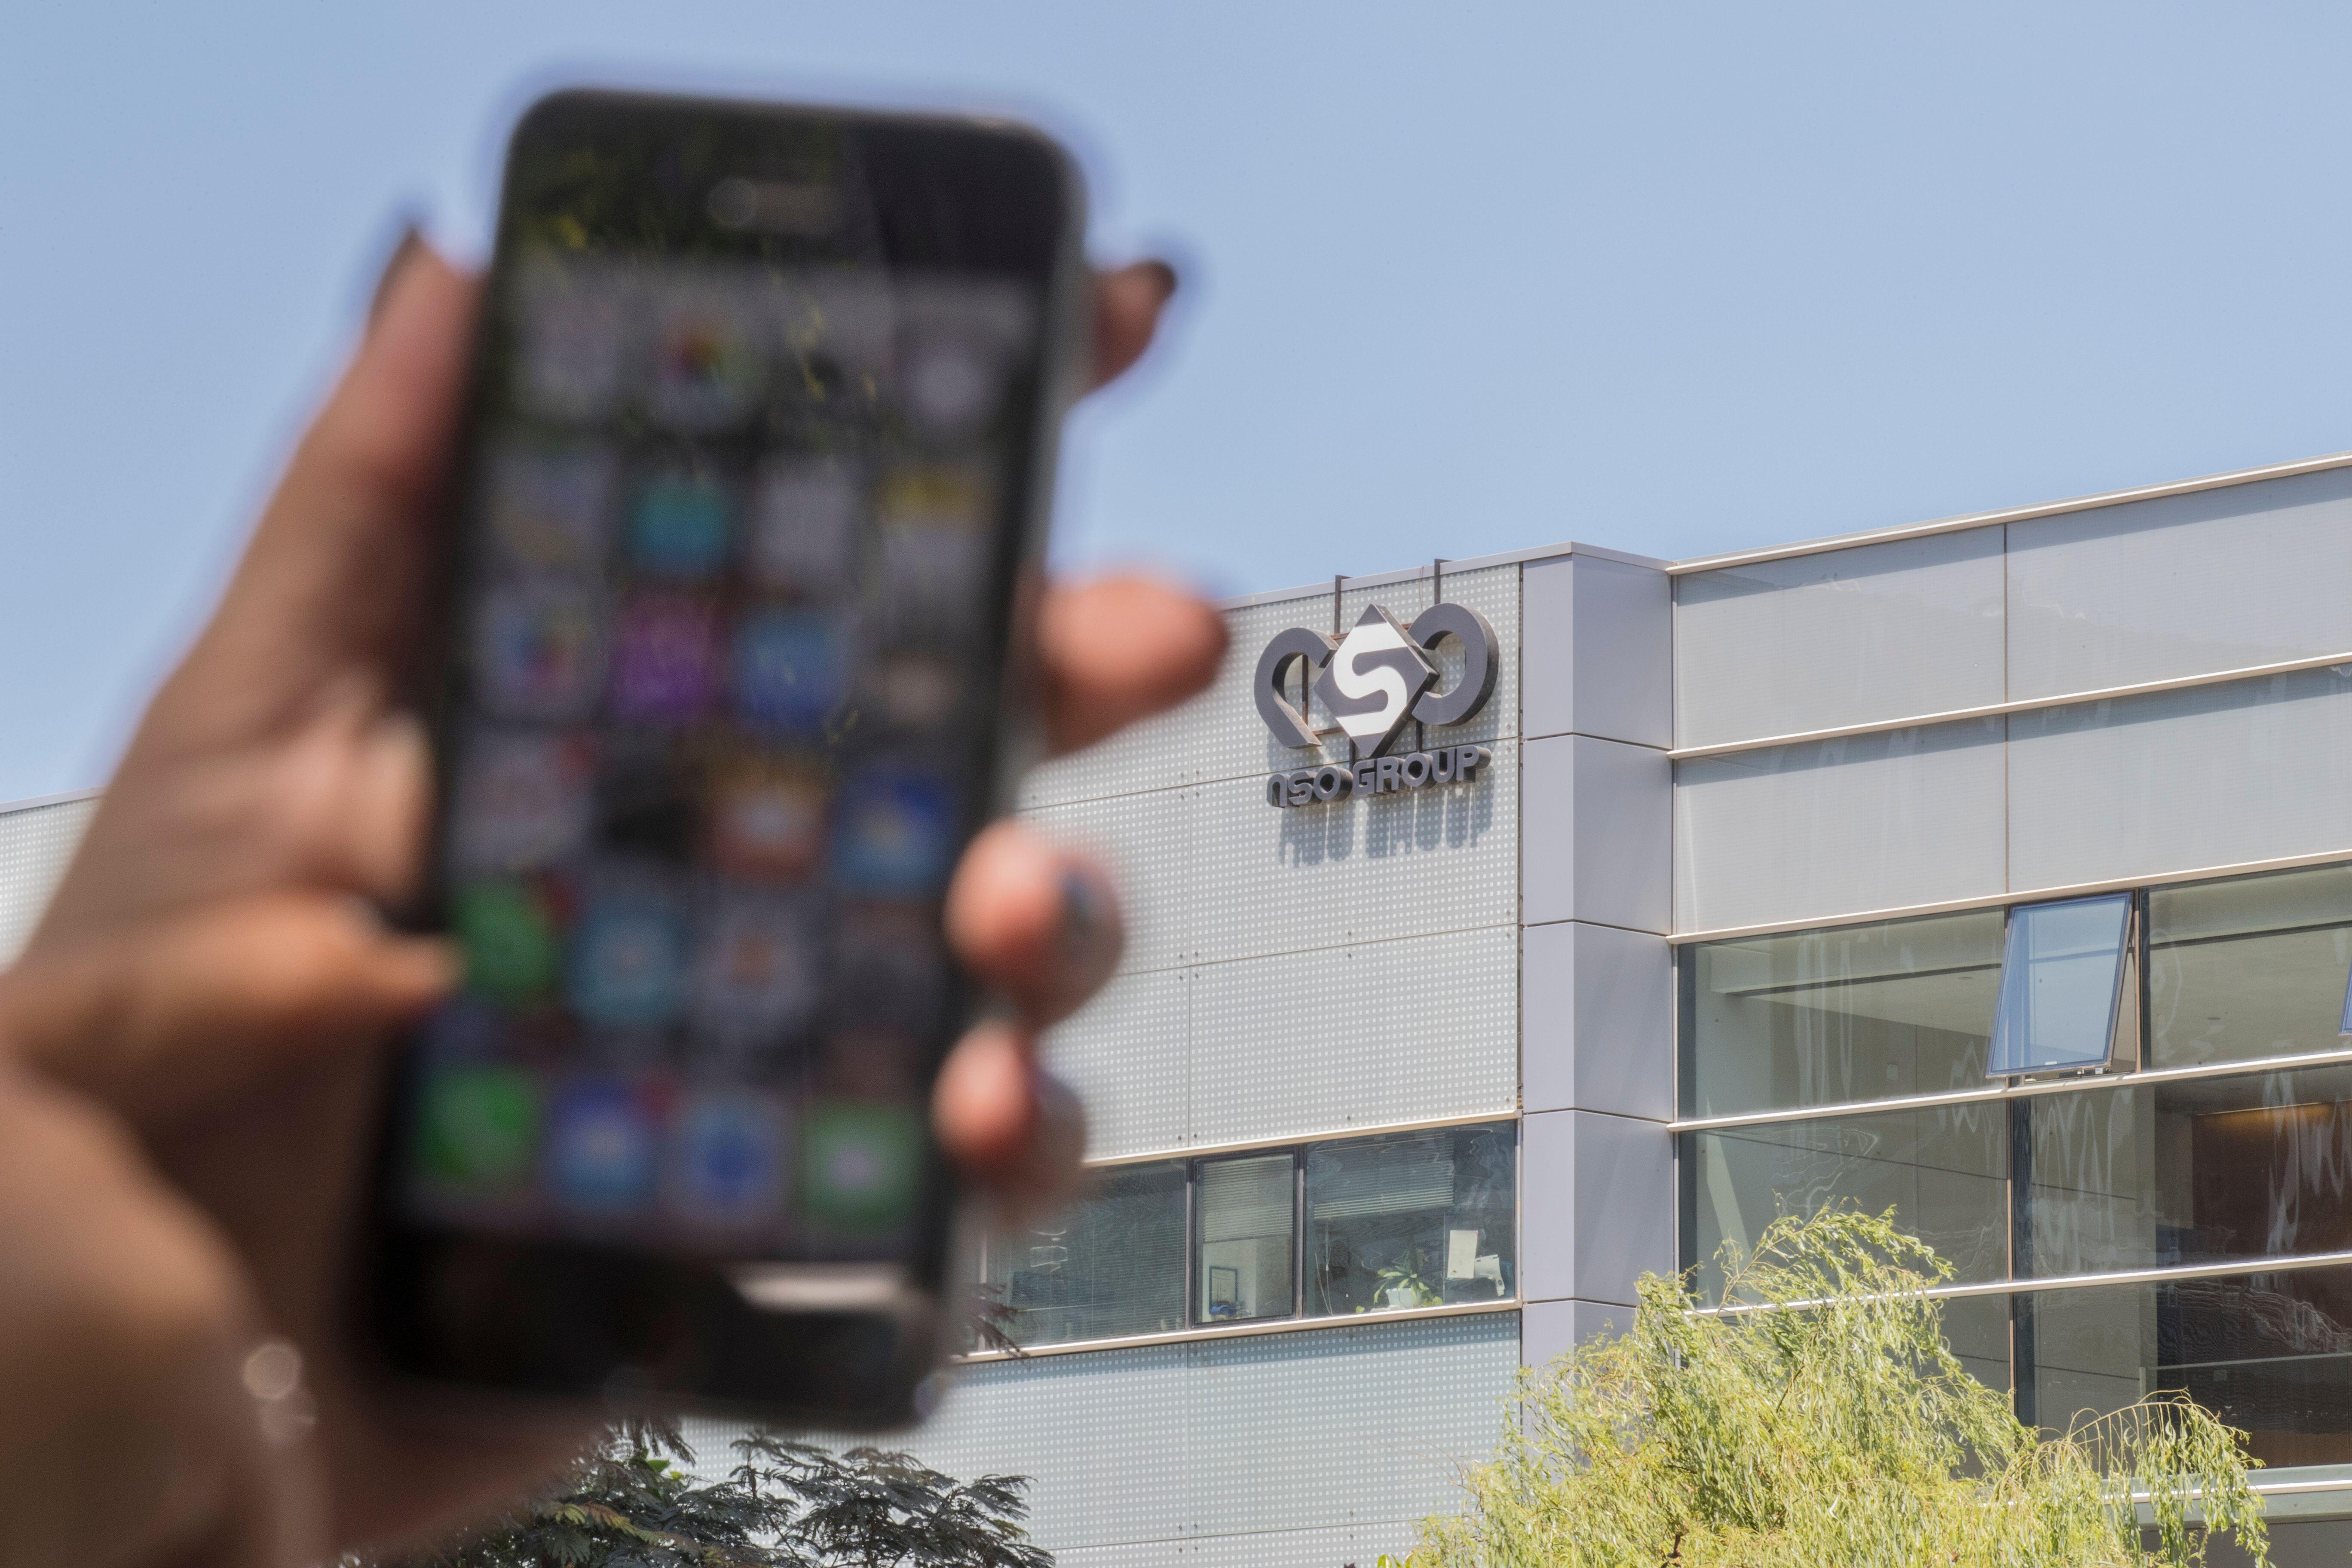 An out-of-focus iPhone is held up in front of NSO Group's headquarters, with the company logo visible on the side of the building.